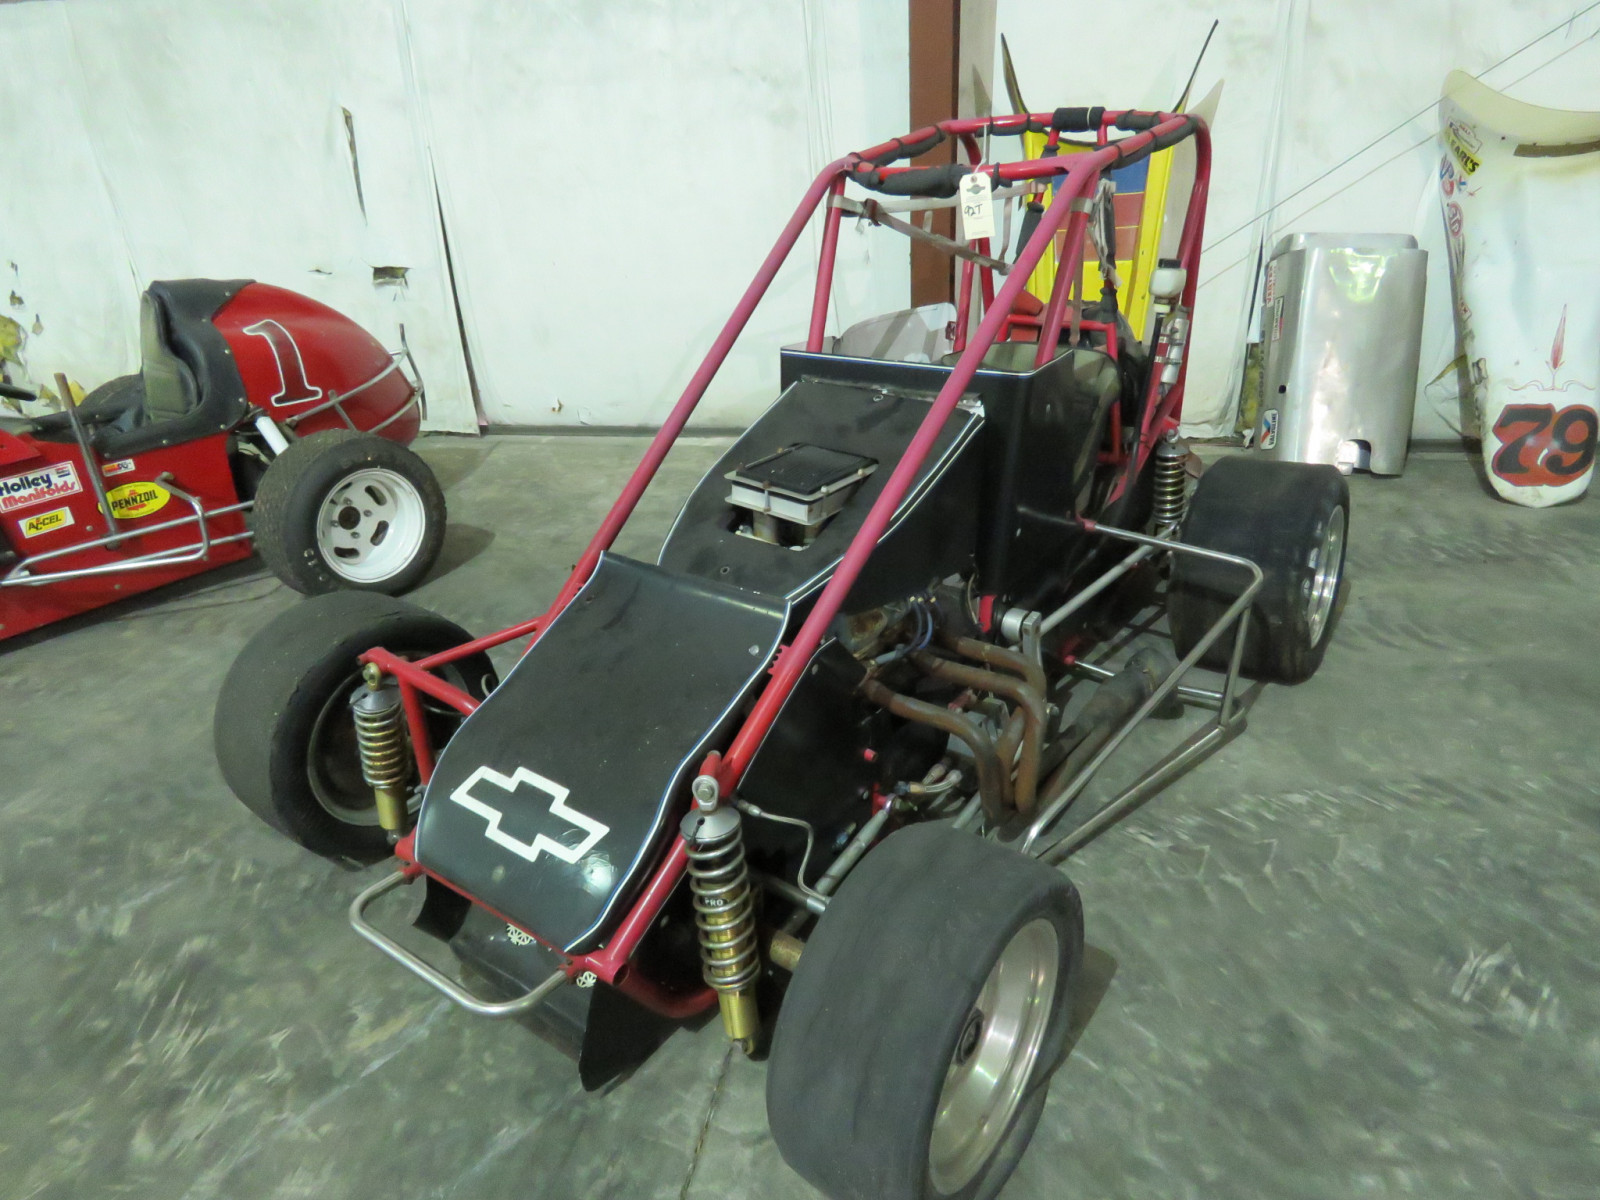 The Beast Vintage Midget Race Car - Image 1